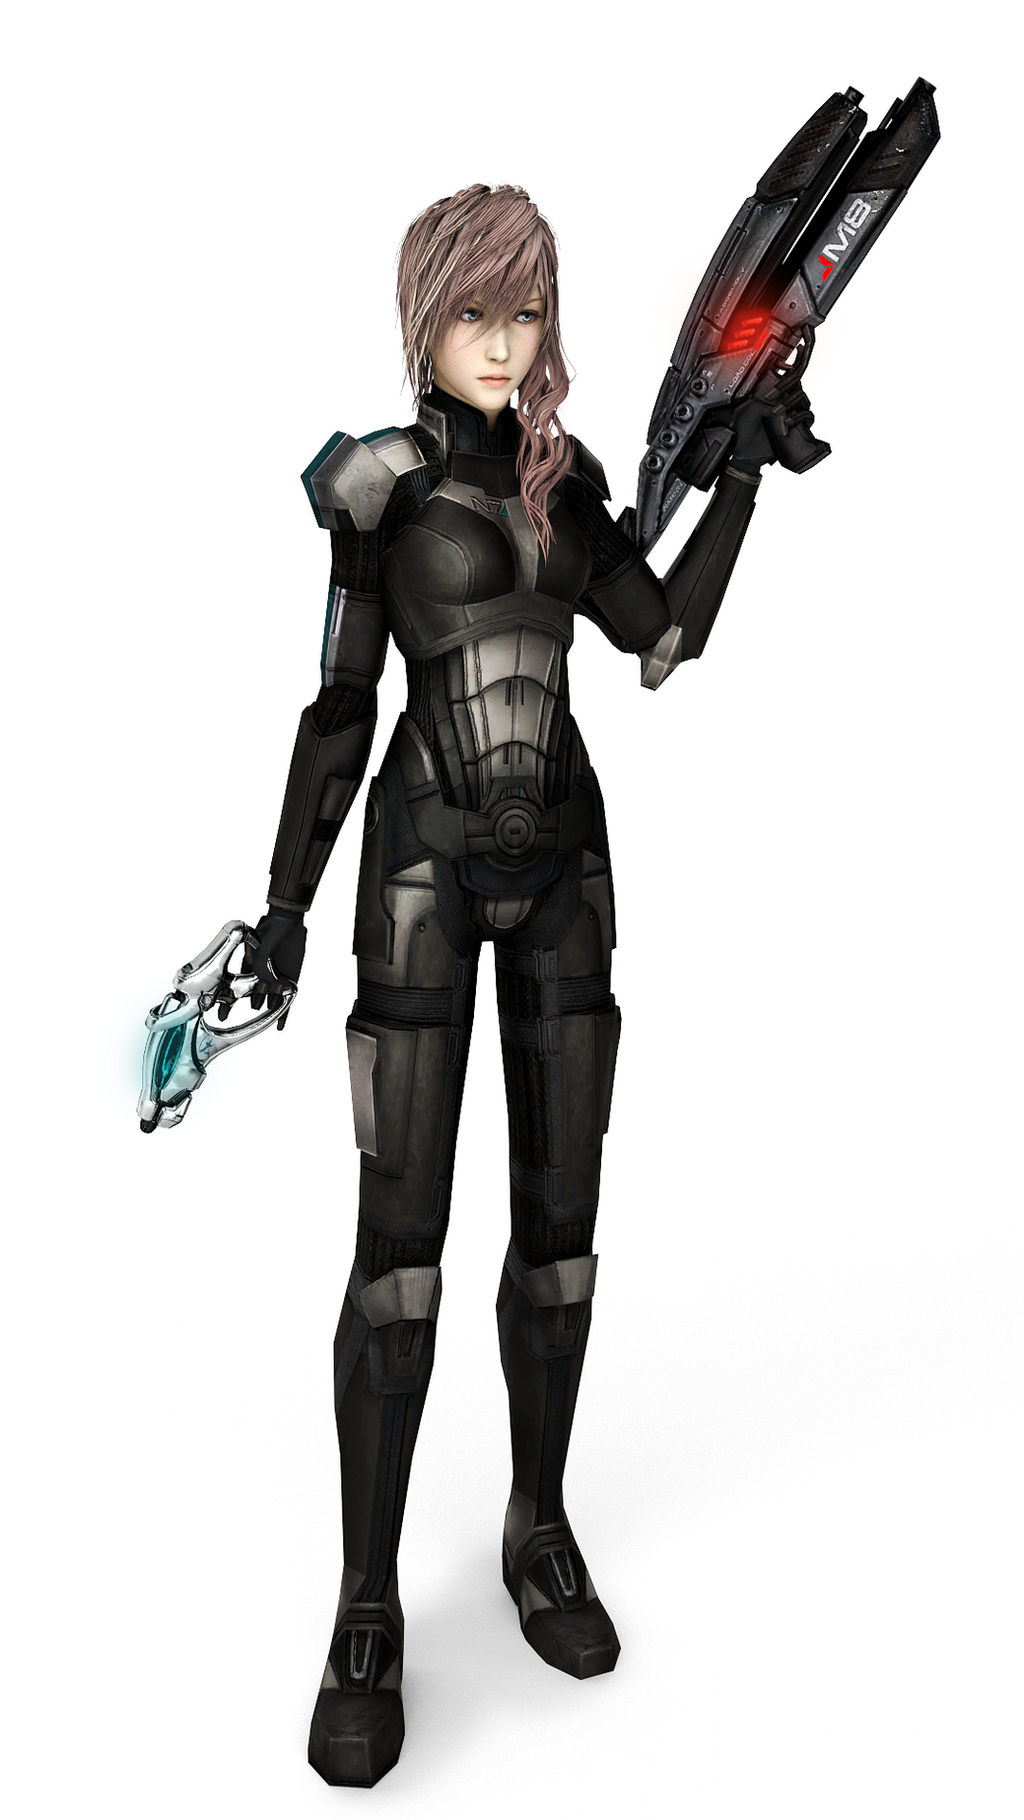 ME3 Lightning - Ready (Render) by andersoncathy